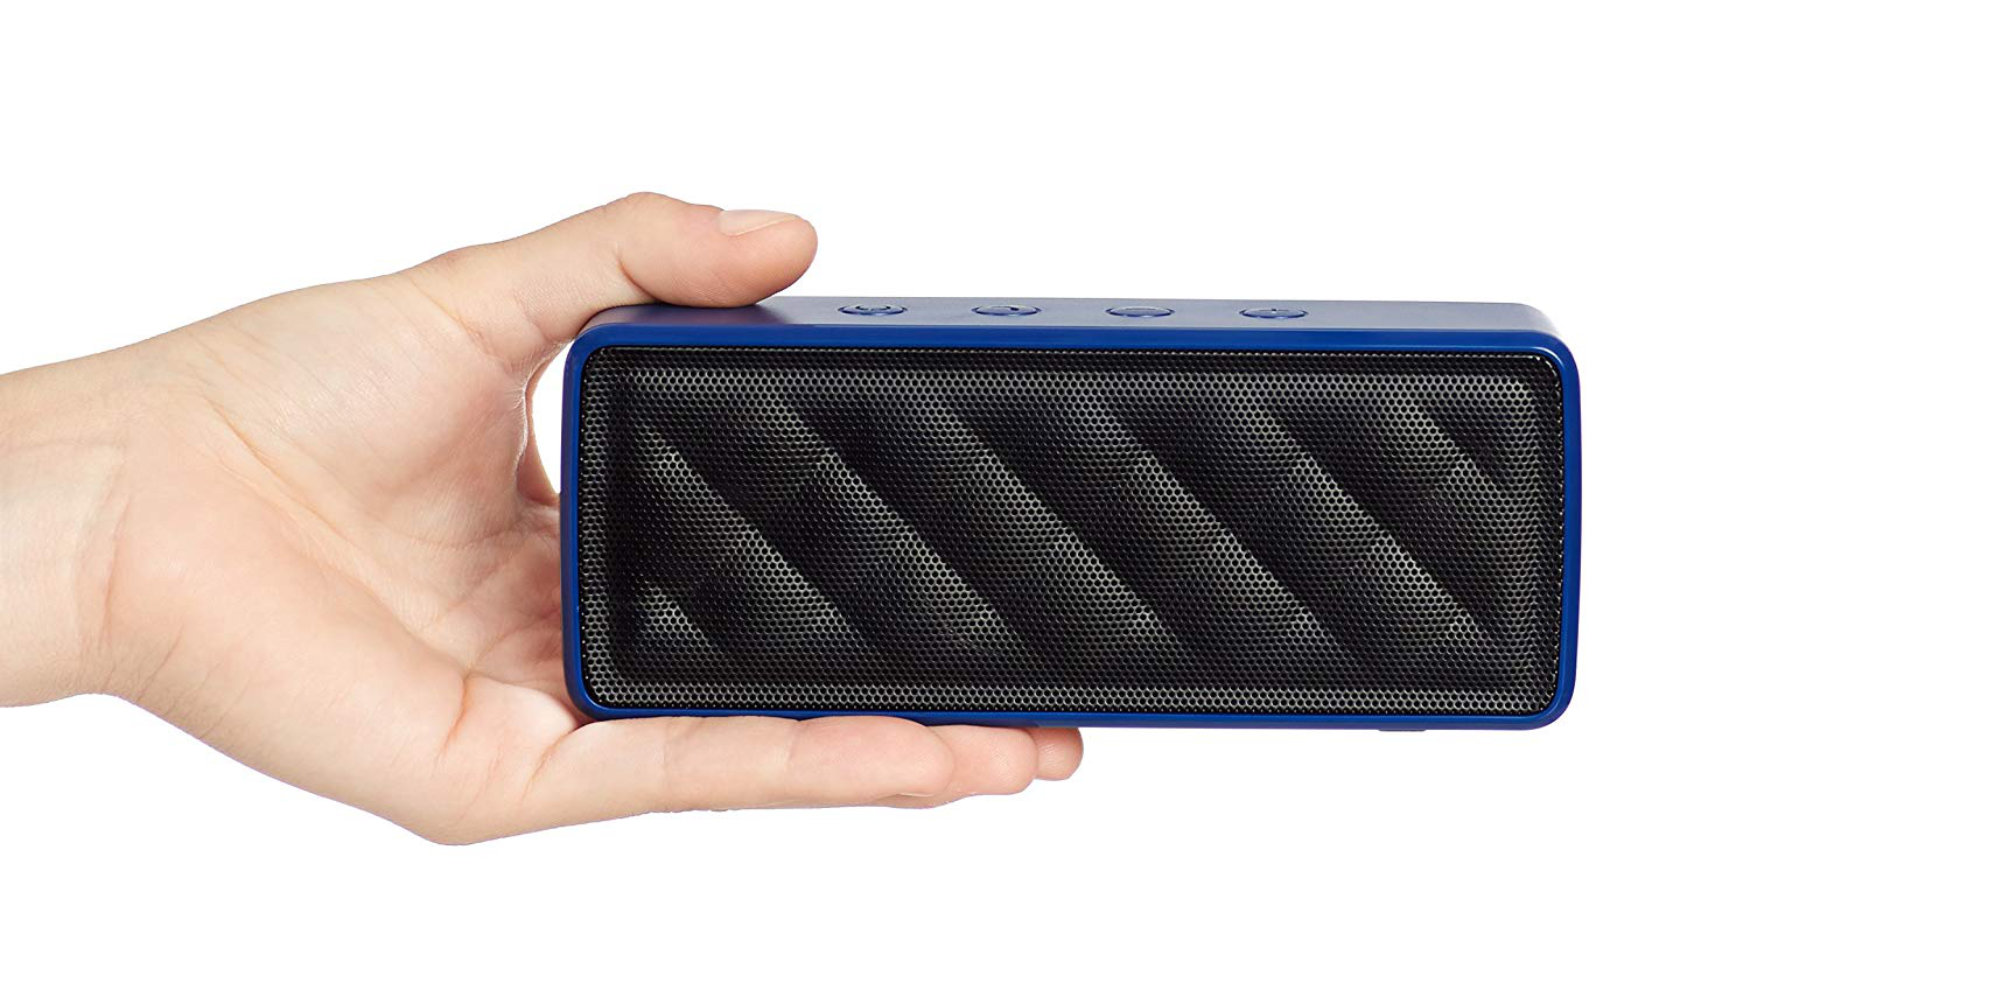 Crank up music or podcasts anywhere w/ Amazon's Bluetooth Speaker: $10 (Save 50%)